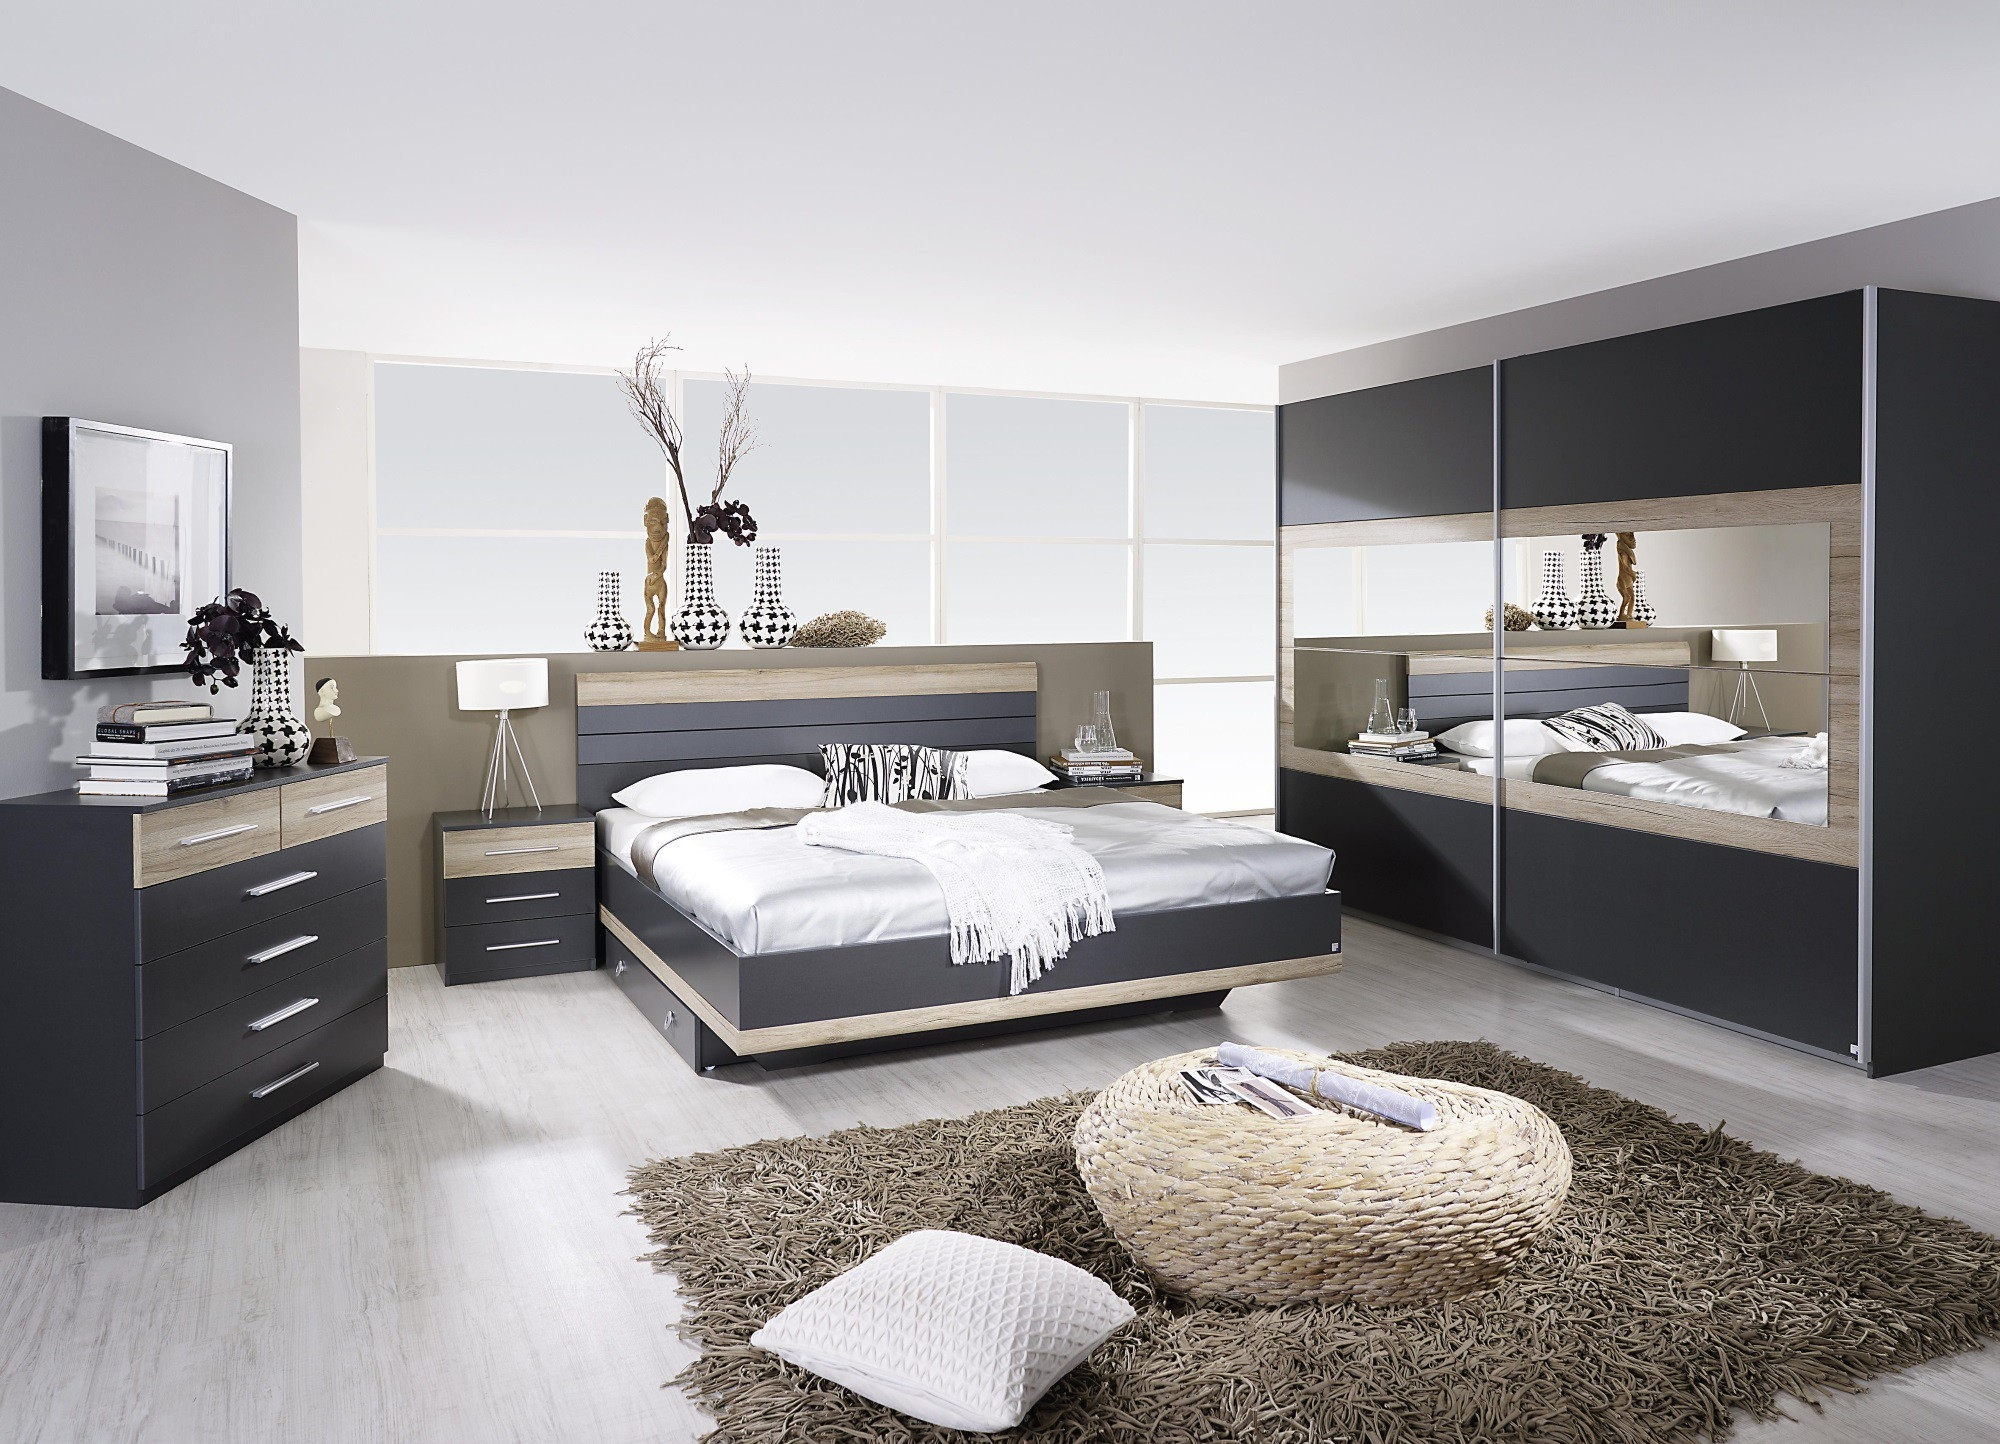 Chambre adulte compl te contemporaine gris ch ne clair for Decoration chambre adulte moderne